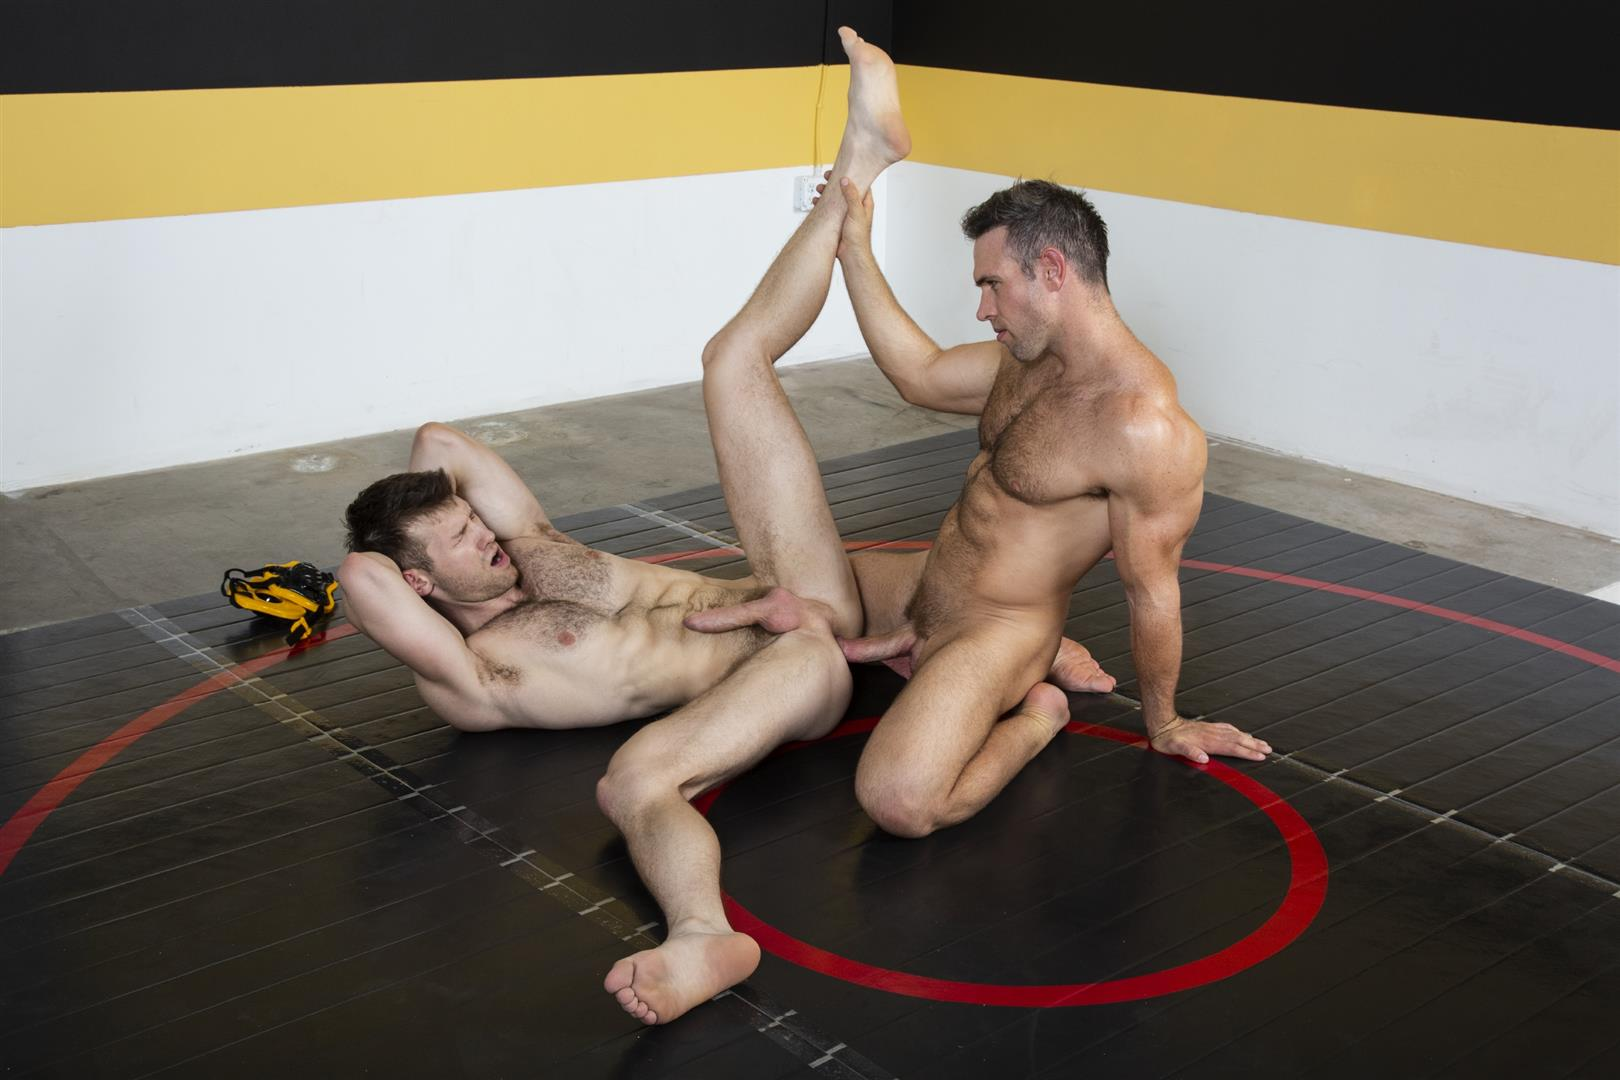 Hot-House-Alex-Mecum-Jacob-Peterson-Bareback-Wrestling-Free-Video-Download-17 Taking My Wrestling Coach's Raw Cock On The Mat